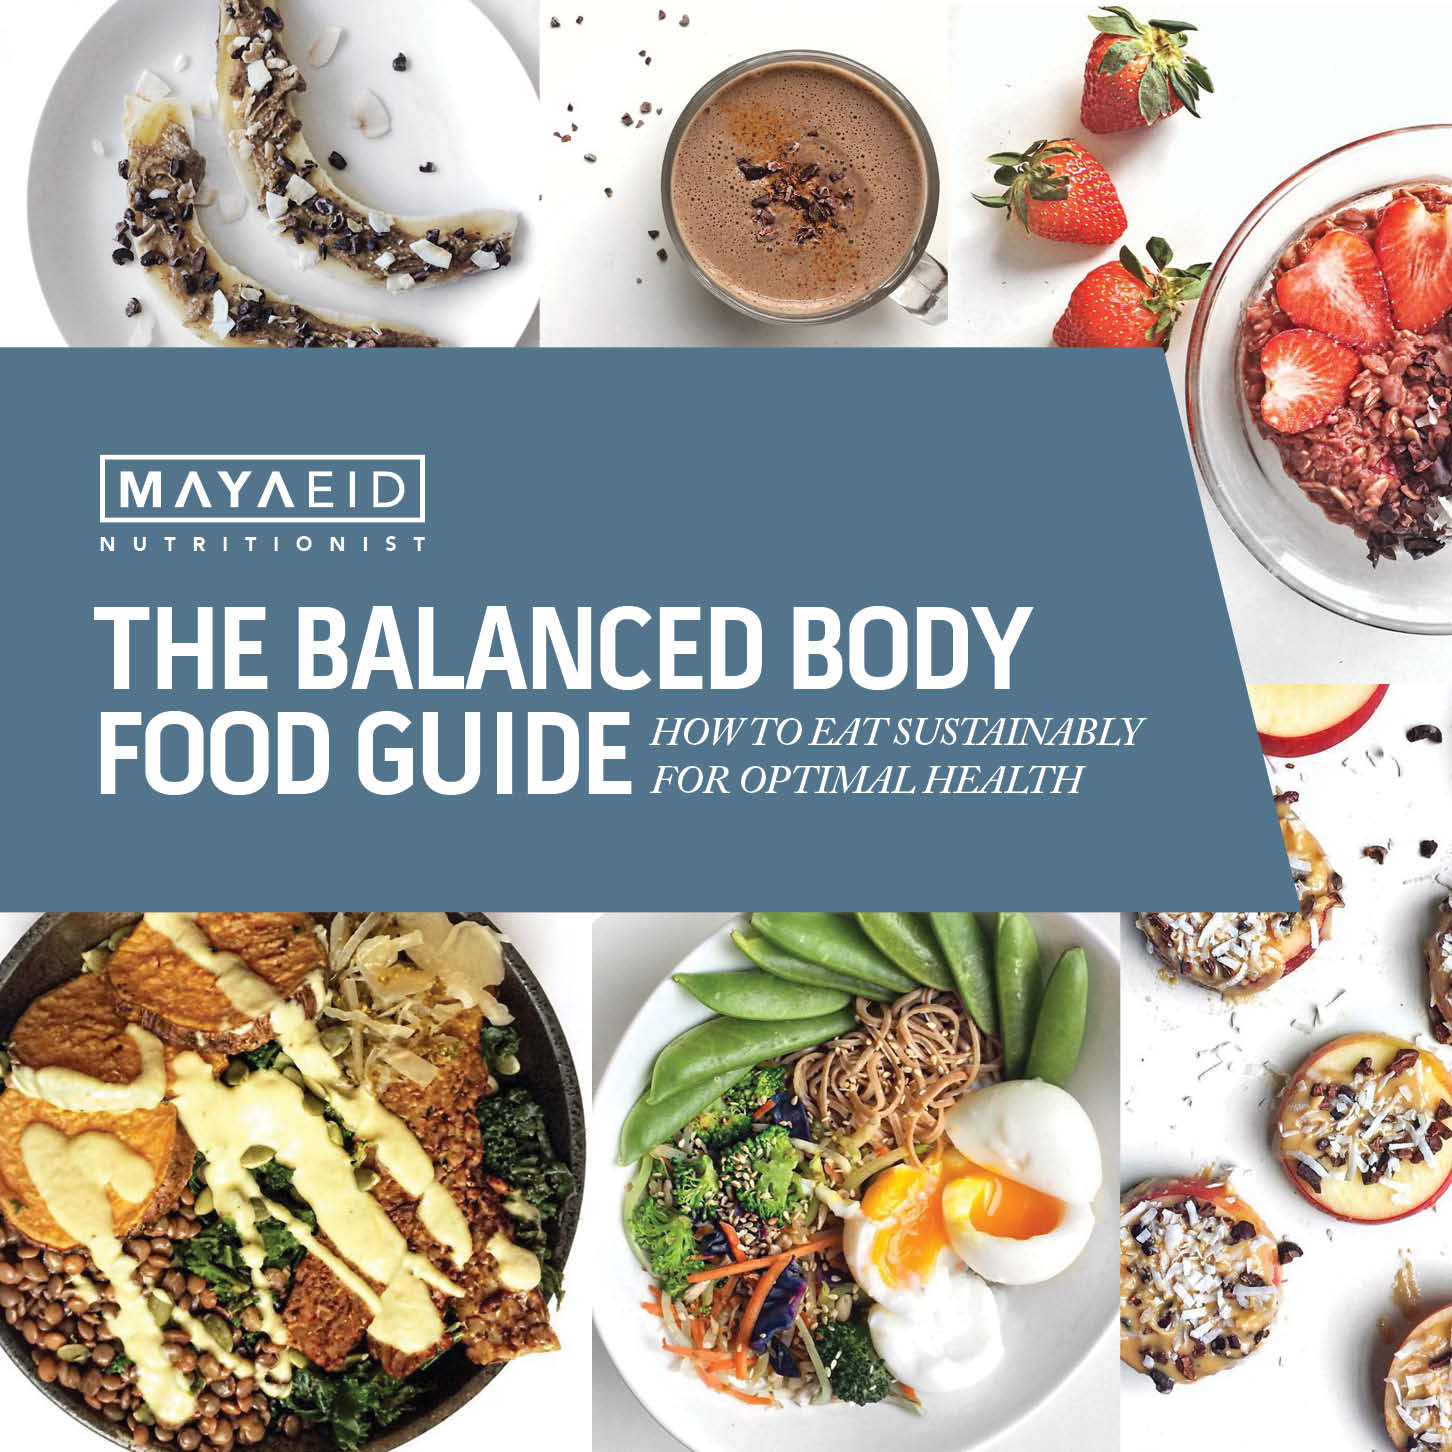 The Balanced Body Food Guide